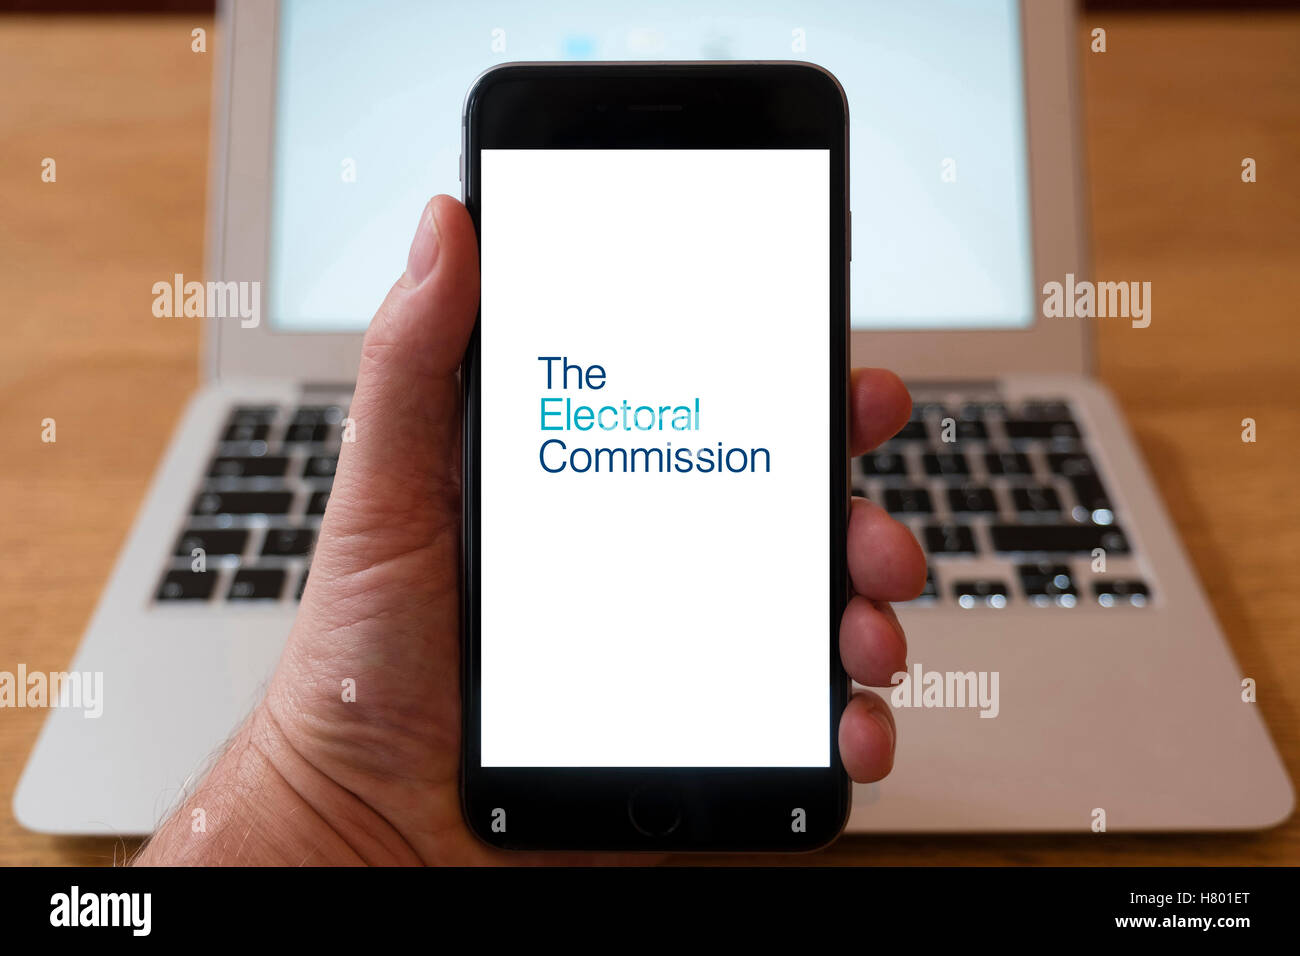 Using iPhone smartphone to display logo of The Electoral Commission Stock Photo